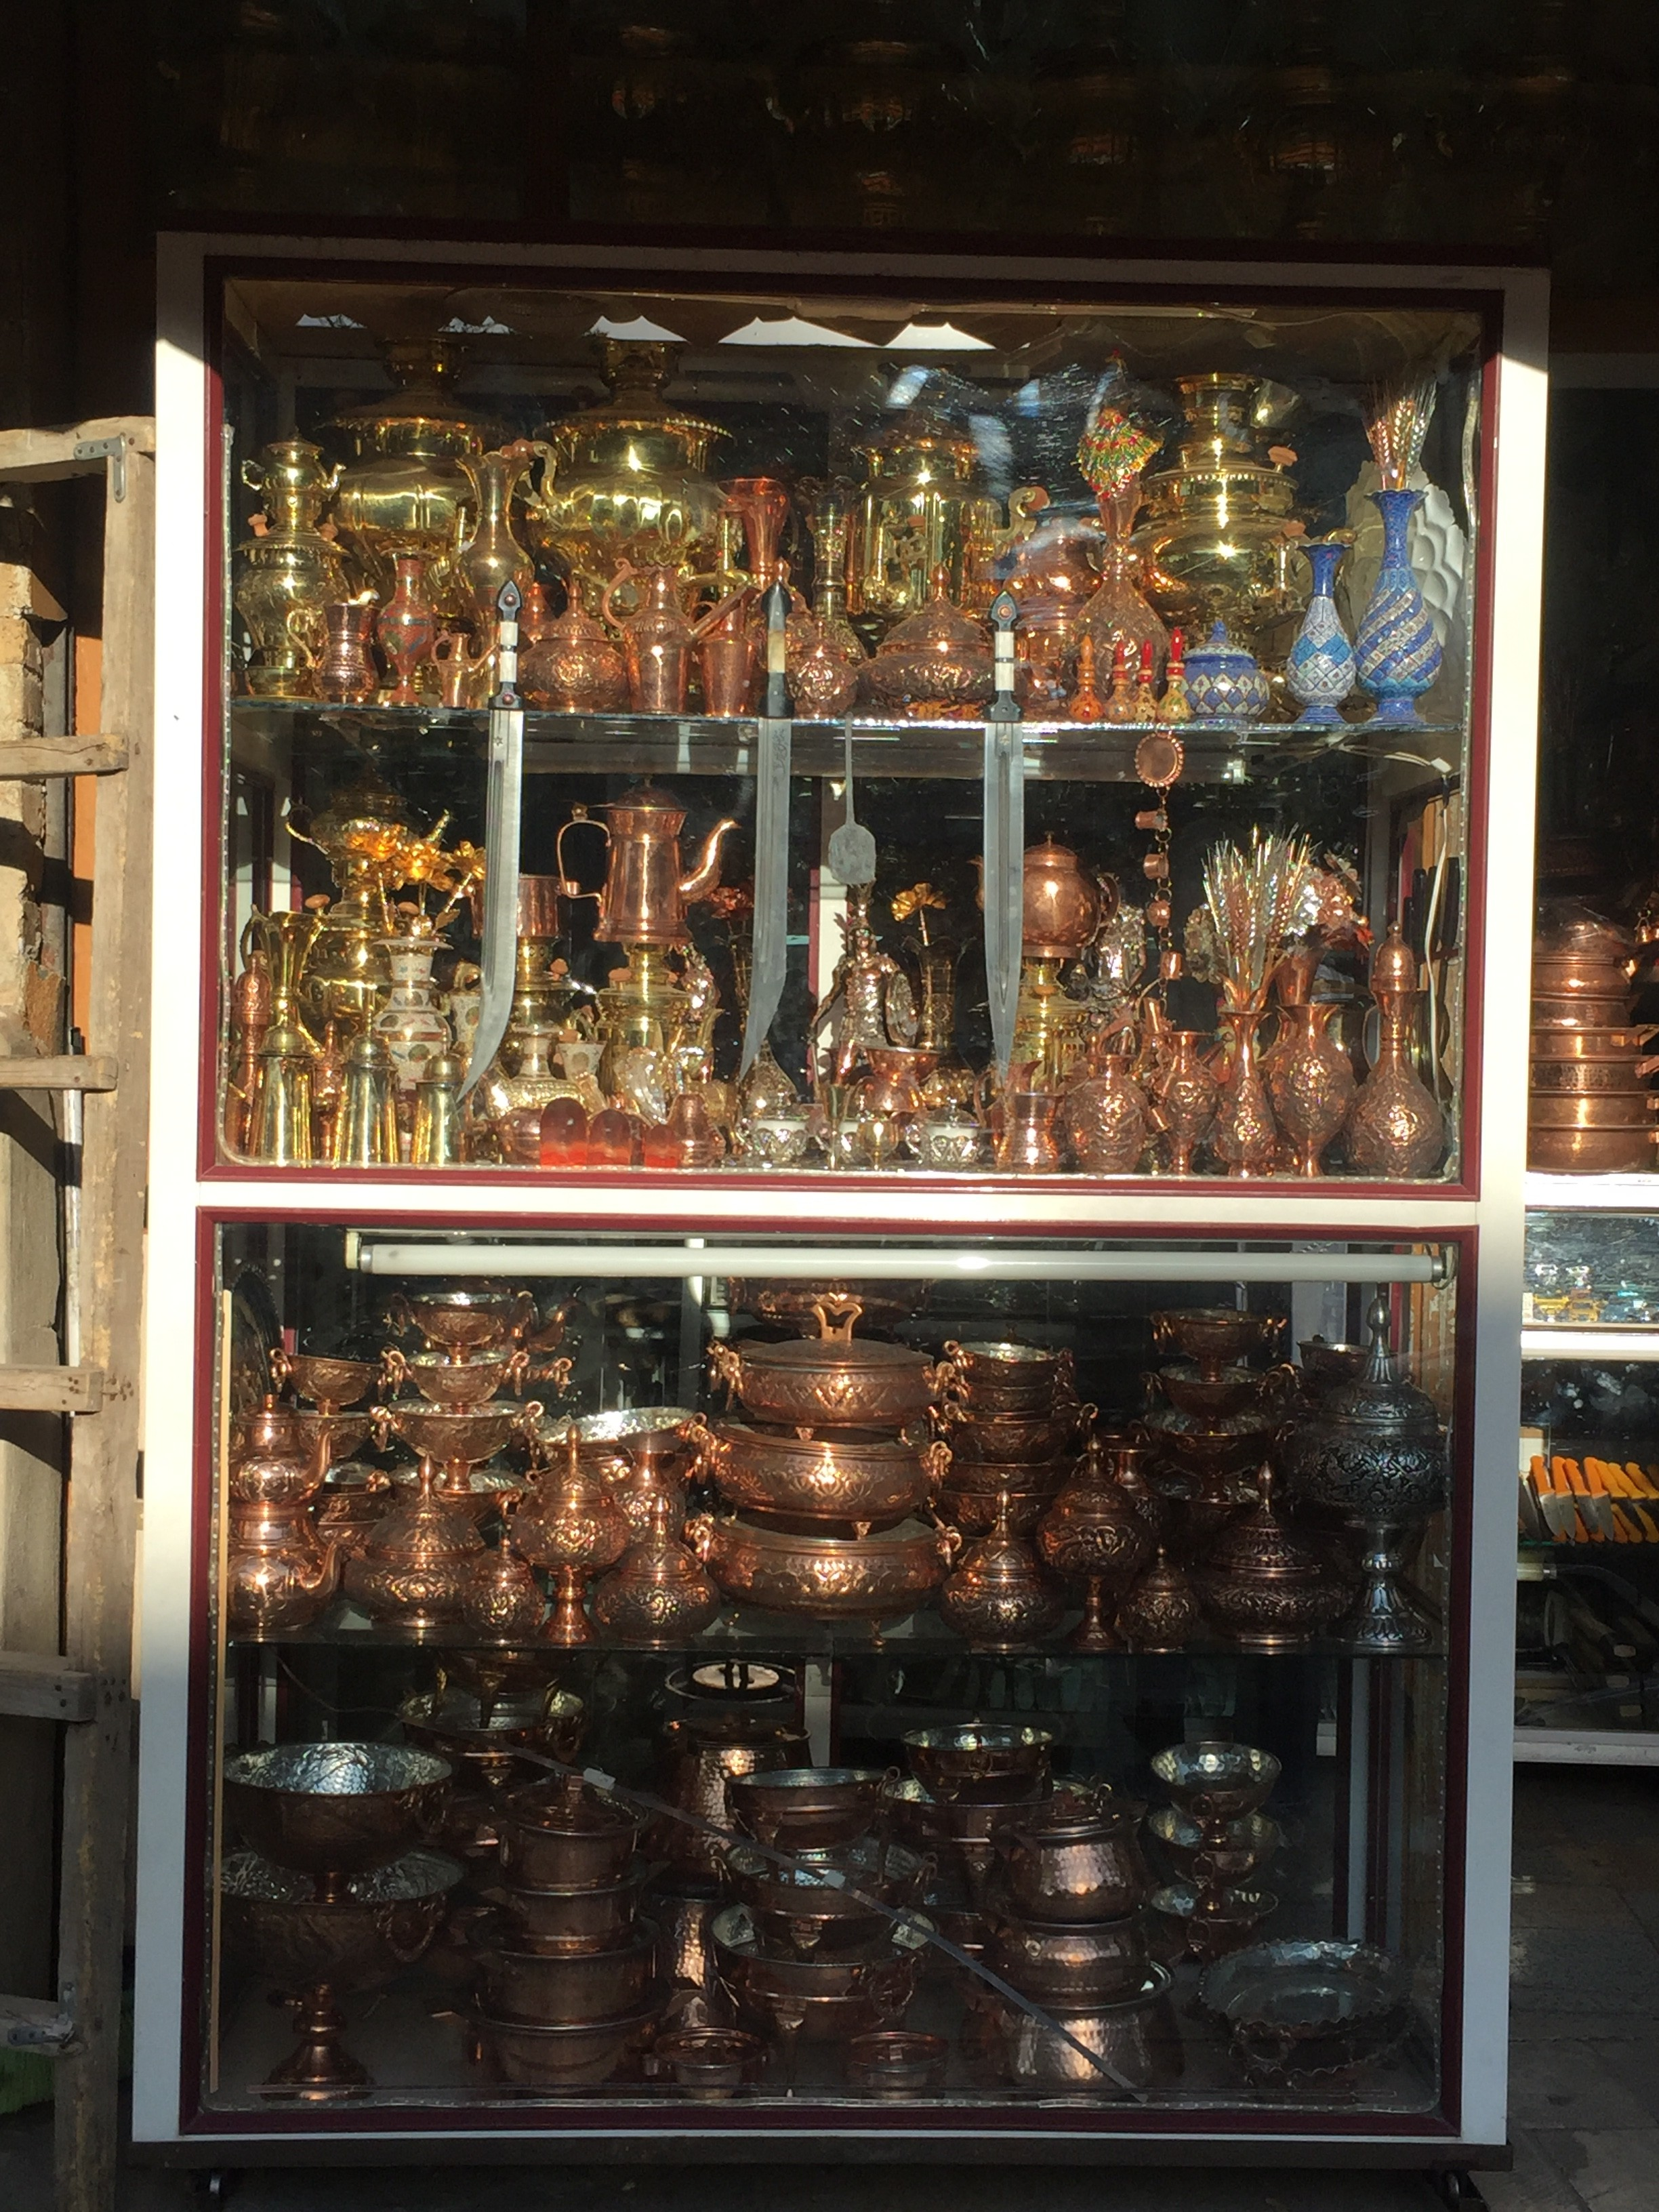 Oh Adam would love this place - copper cookware everywhere!